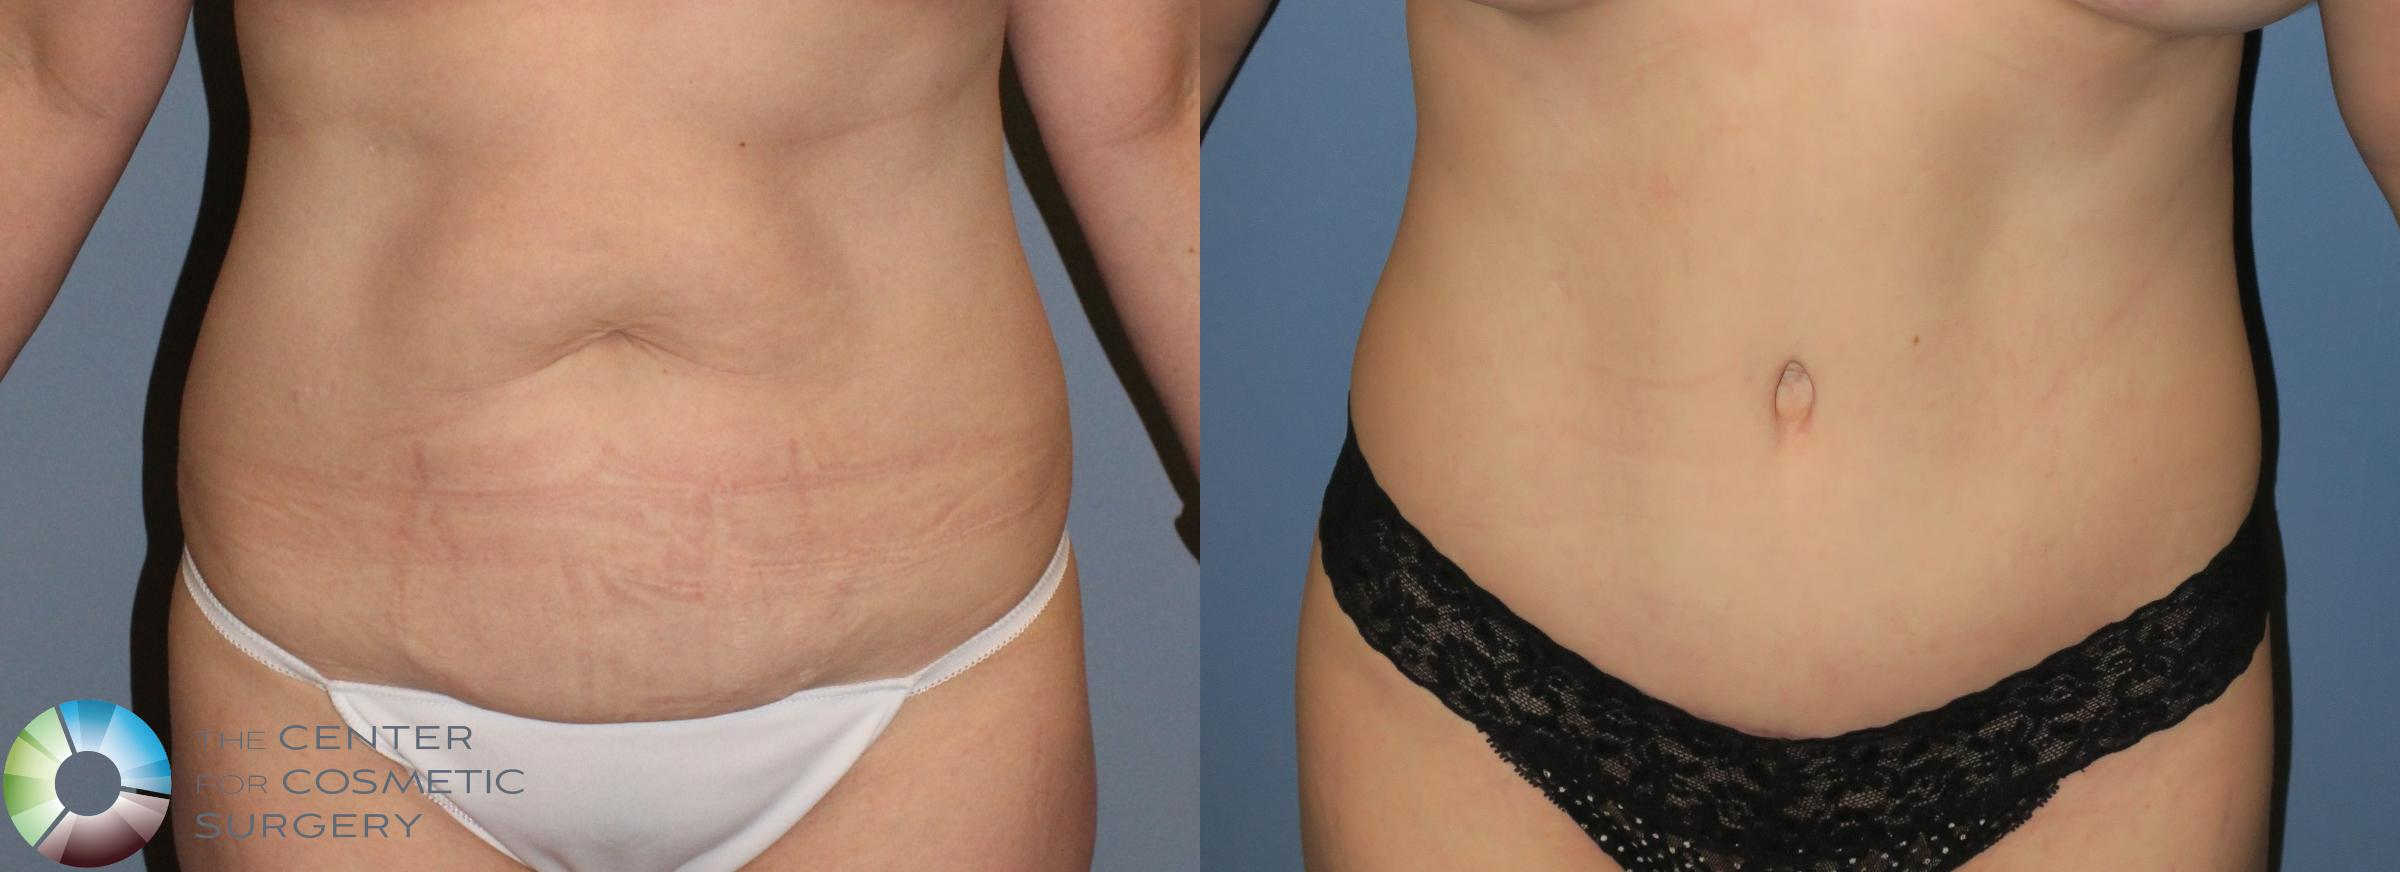 Tummy Tuck Case 792 Before & After View #1 | Golden, CO | The Center for Cosmetic Surgery